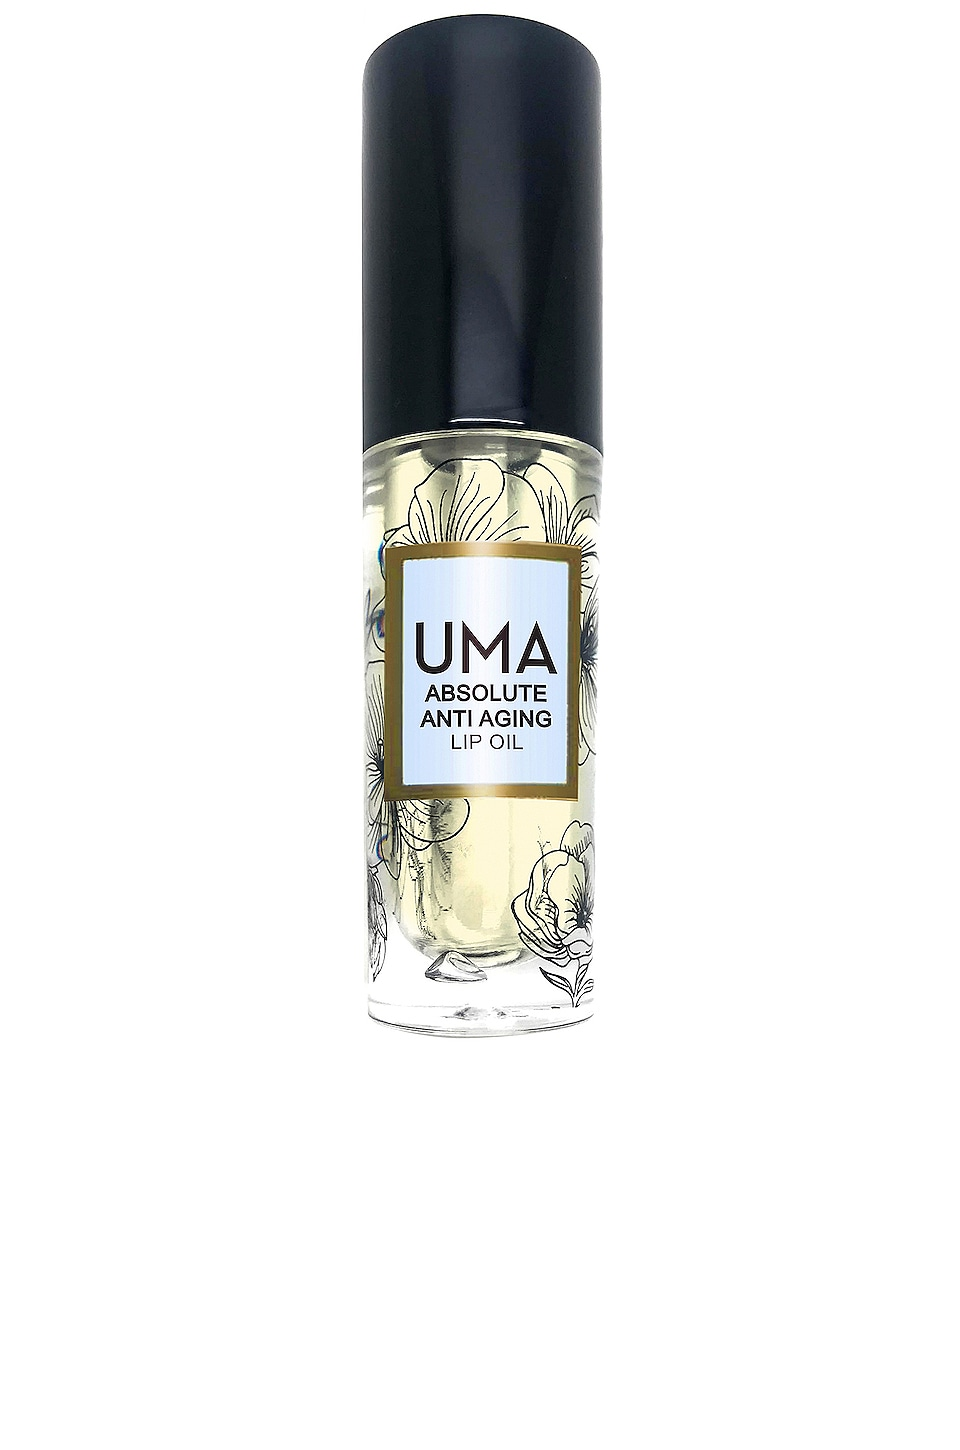 UMA ACEITE LABIAL ABSOLUTE ANTI AGING LIP OIL